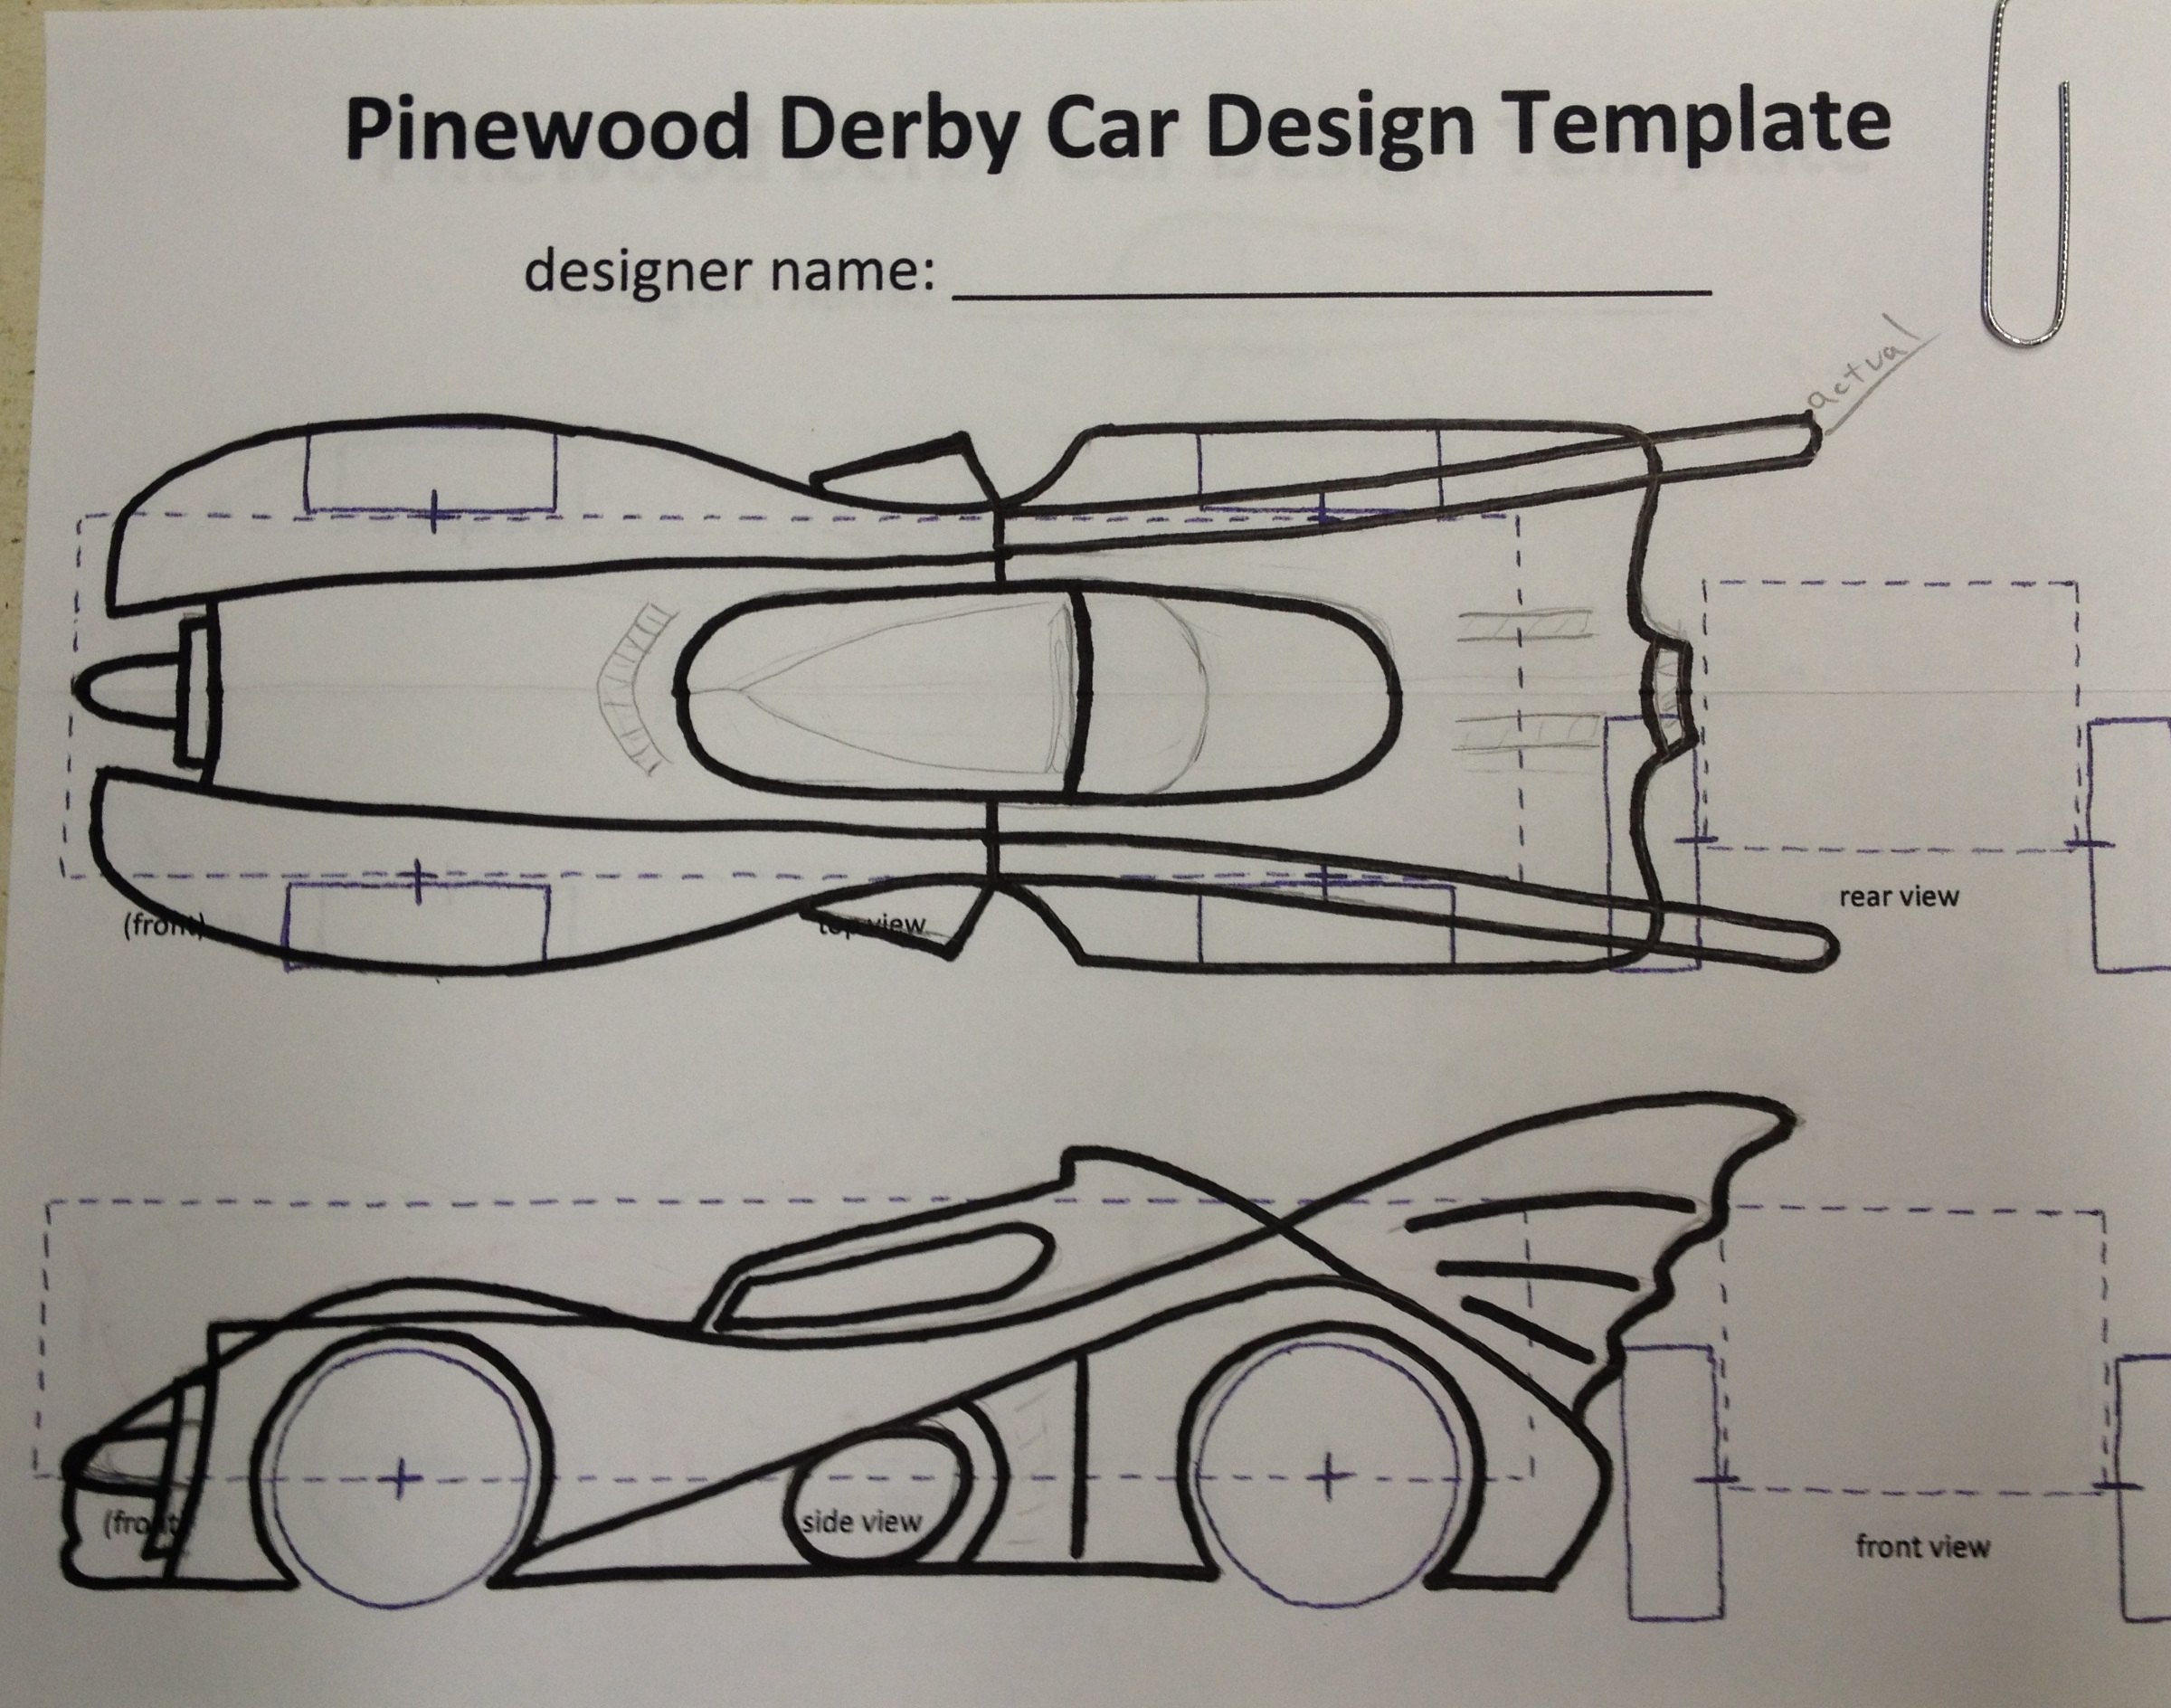 How to build an awesome batmobile pinewood derby car for Pine wood derby template